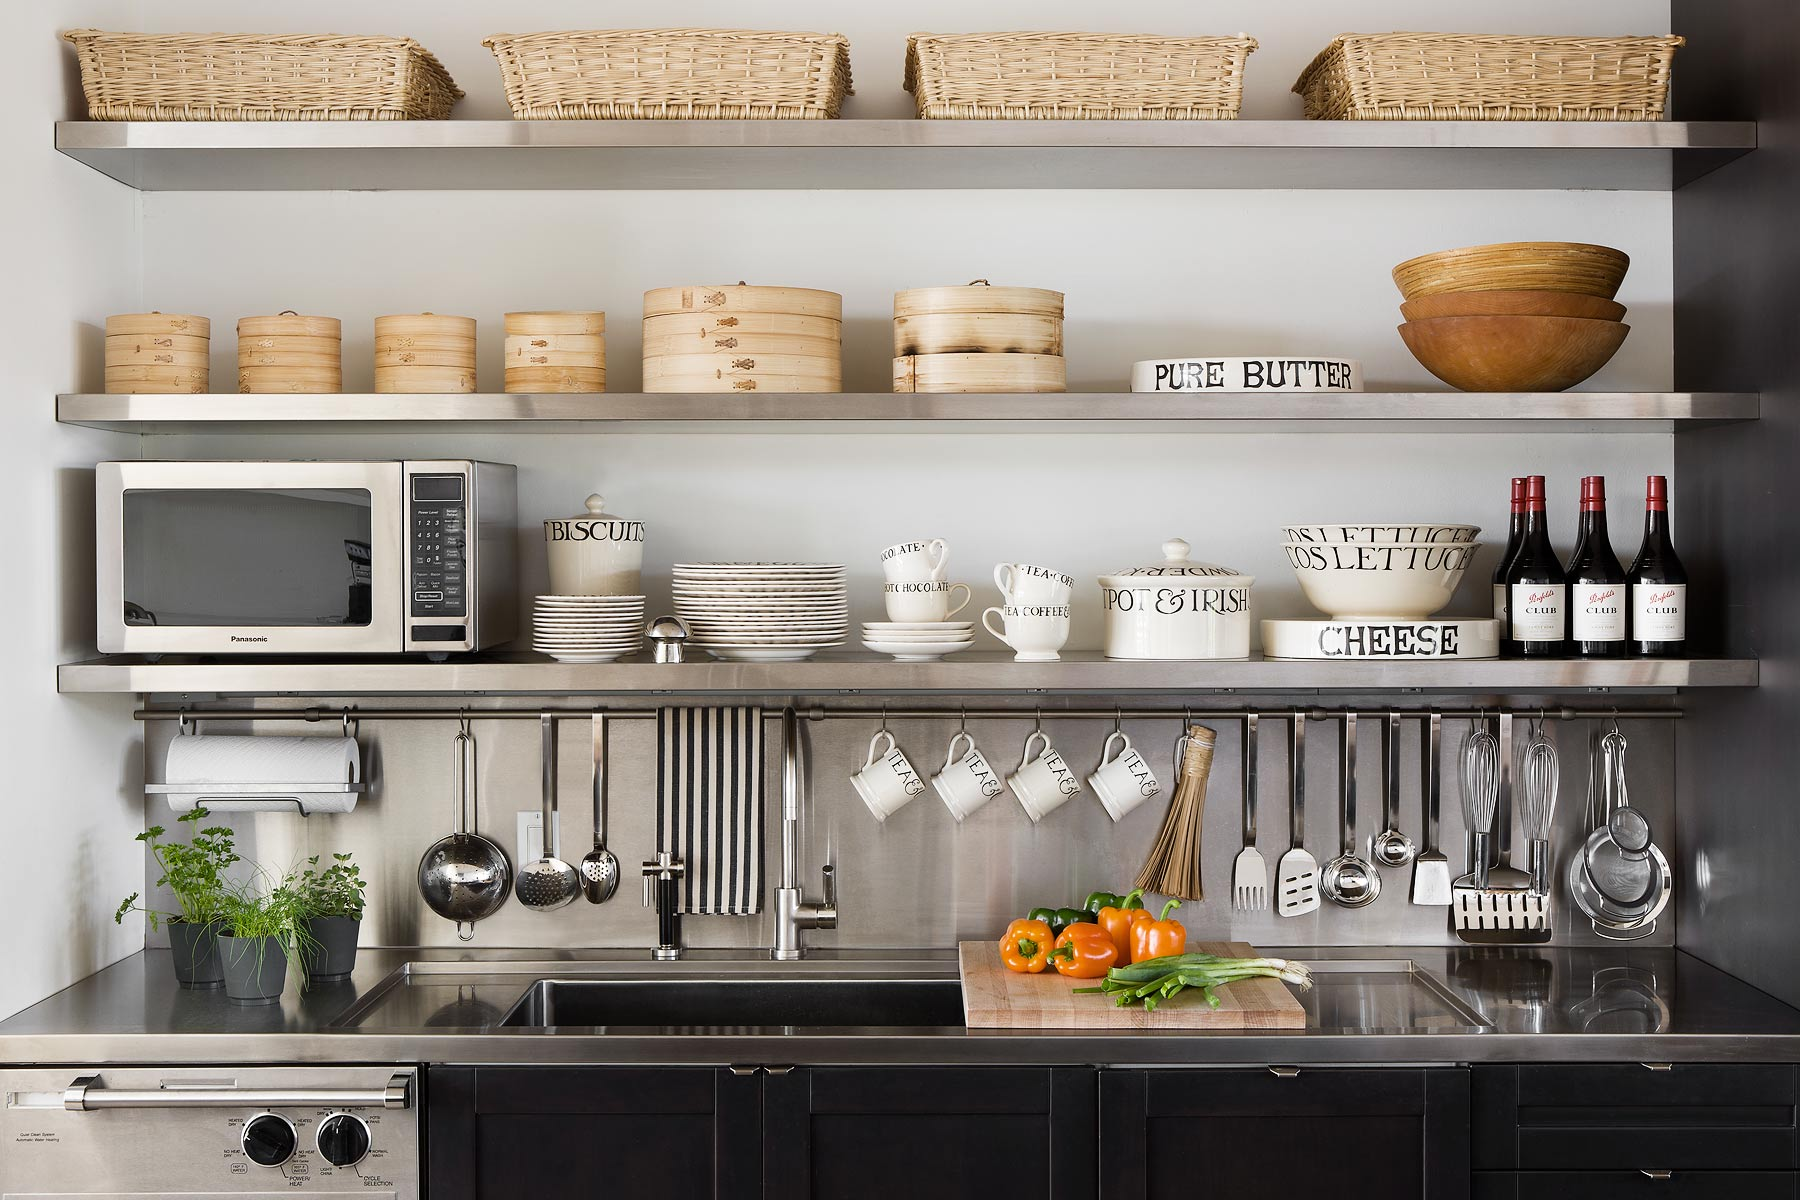 Home catalog photograph showing organized kitchen shelves